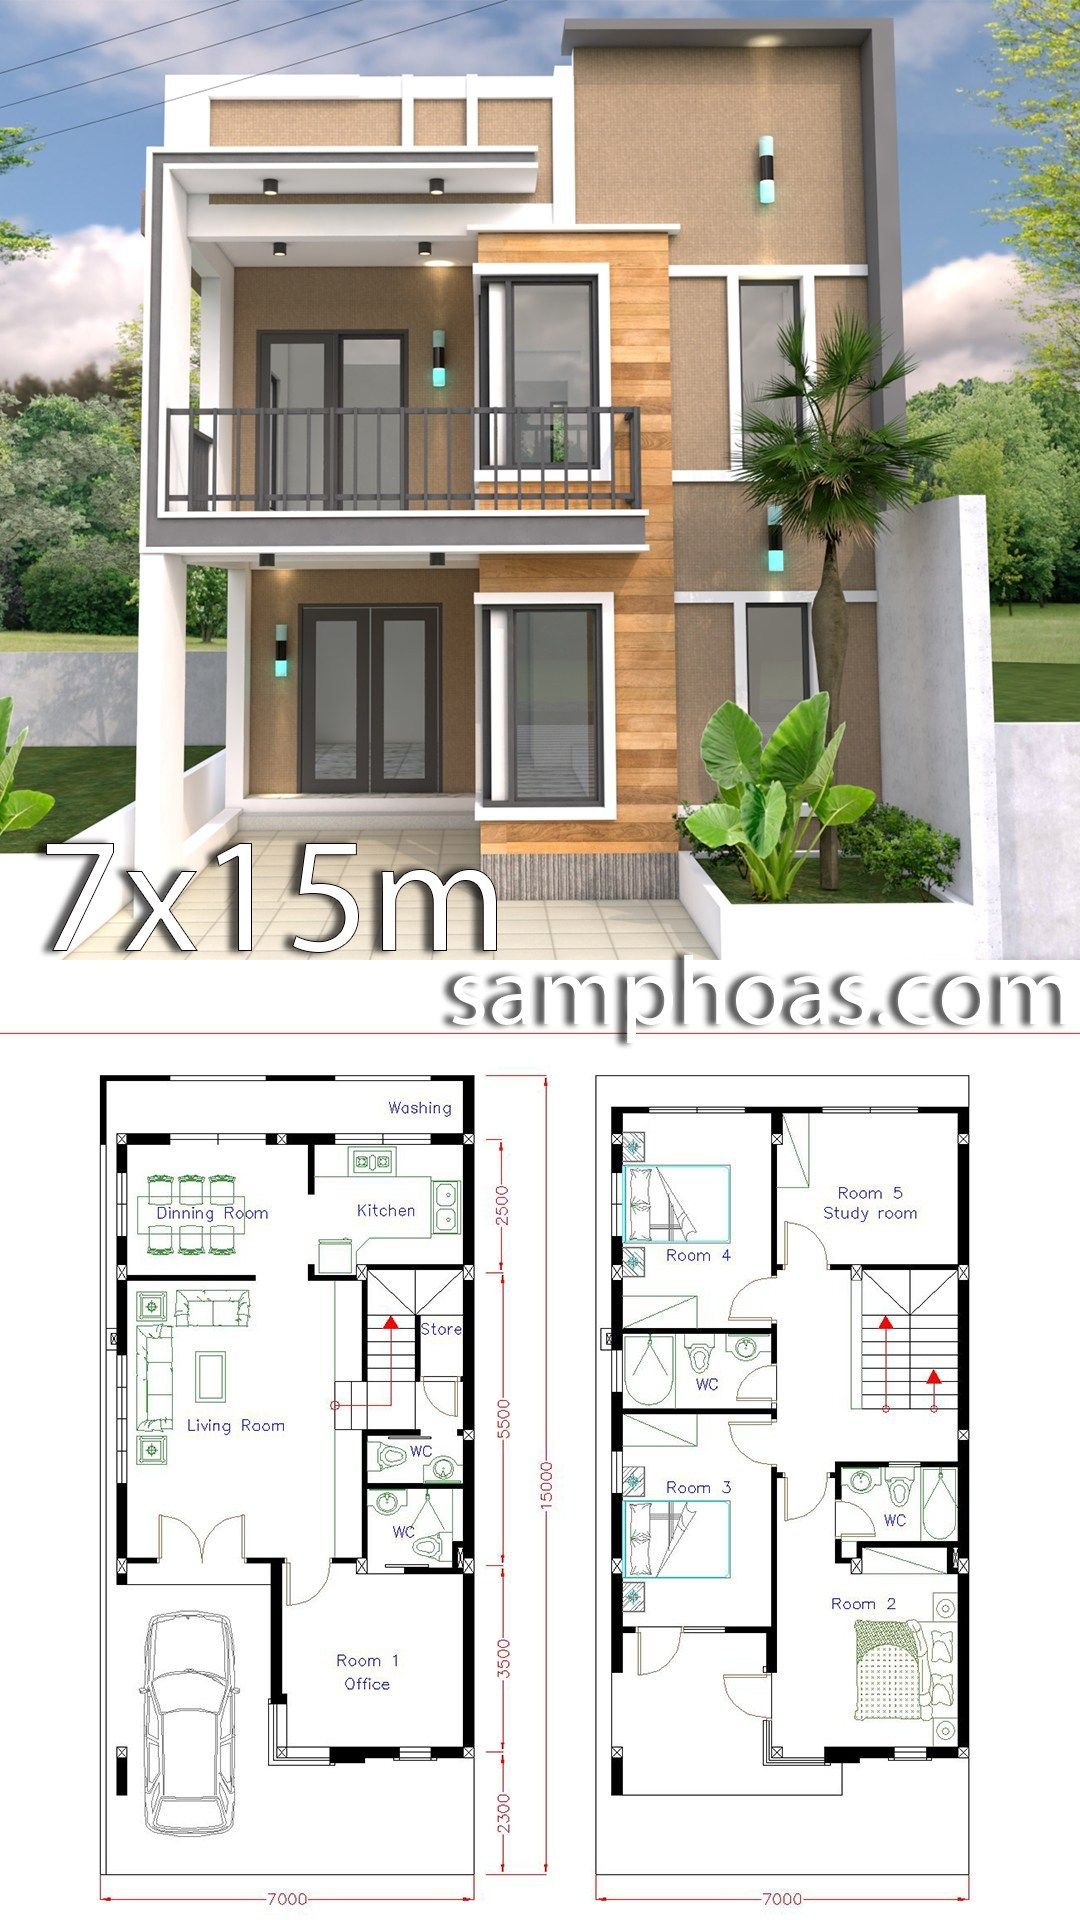 Home Design Plan 7x15m With 5 Bedrooms Samphoas Plansearch Duplex House Design Home Design Plan Duplex House Plans